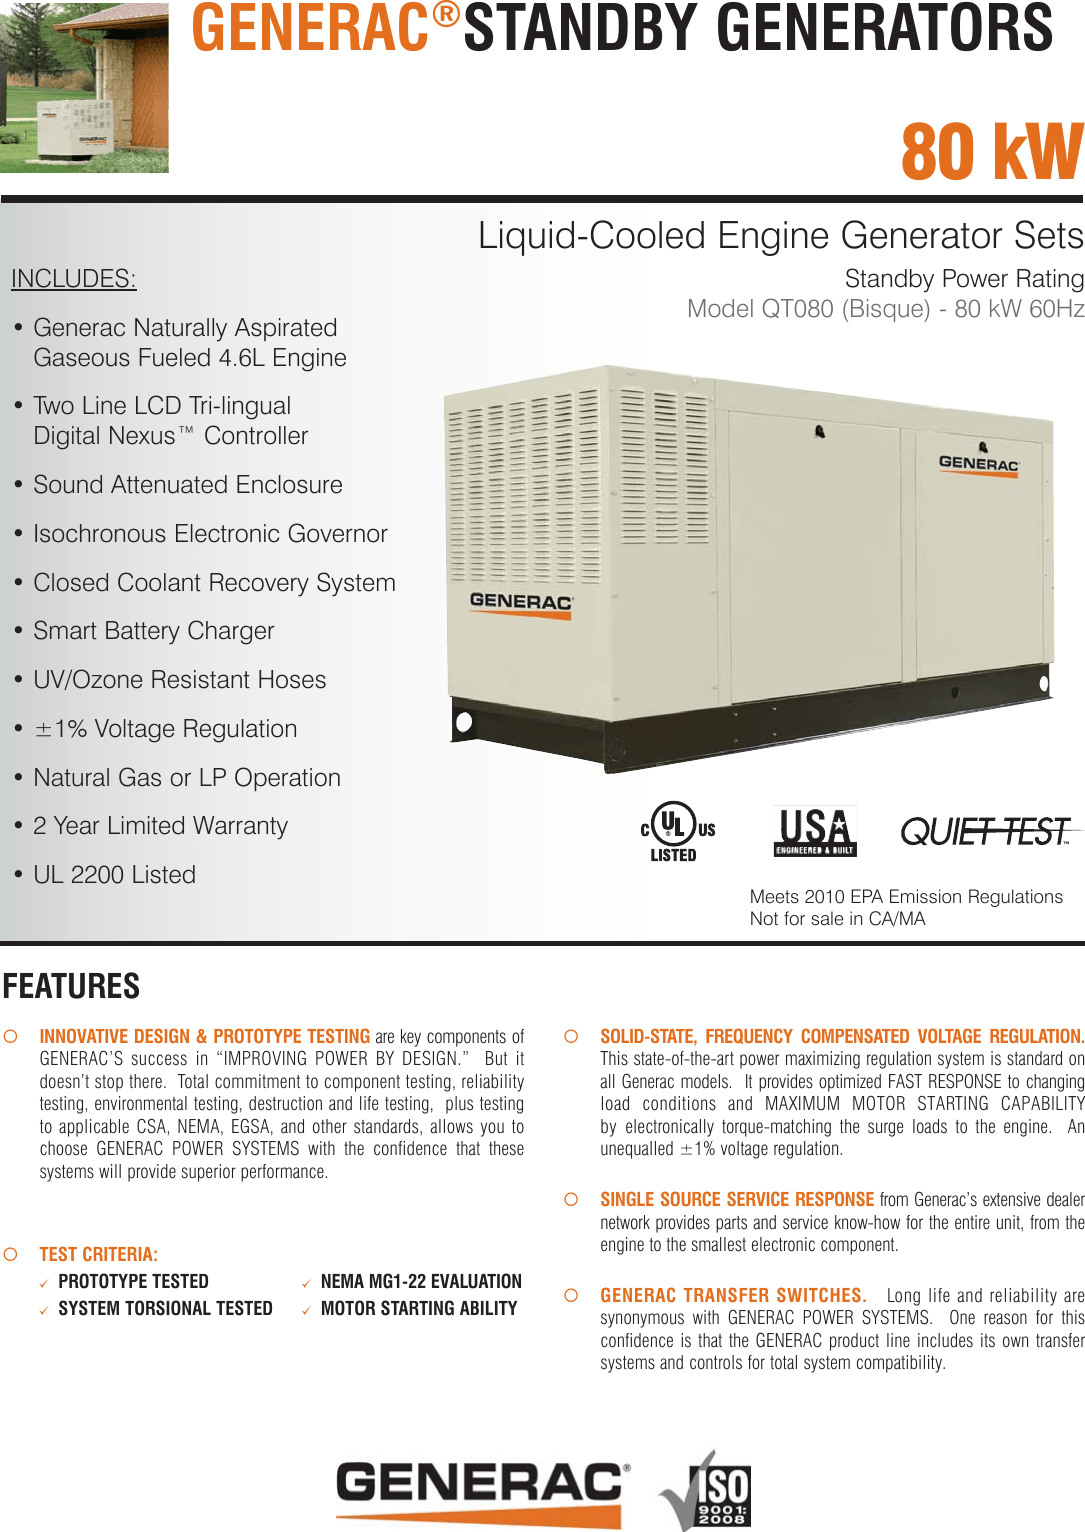 hight resolution of  generacqt080usersmanual166202 750785497 user guide page 1 generac qt080 users manual 0188680sby rev f